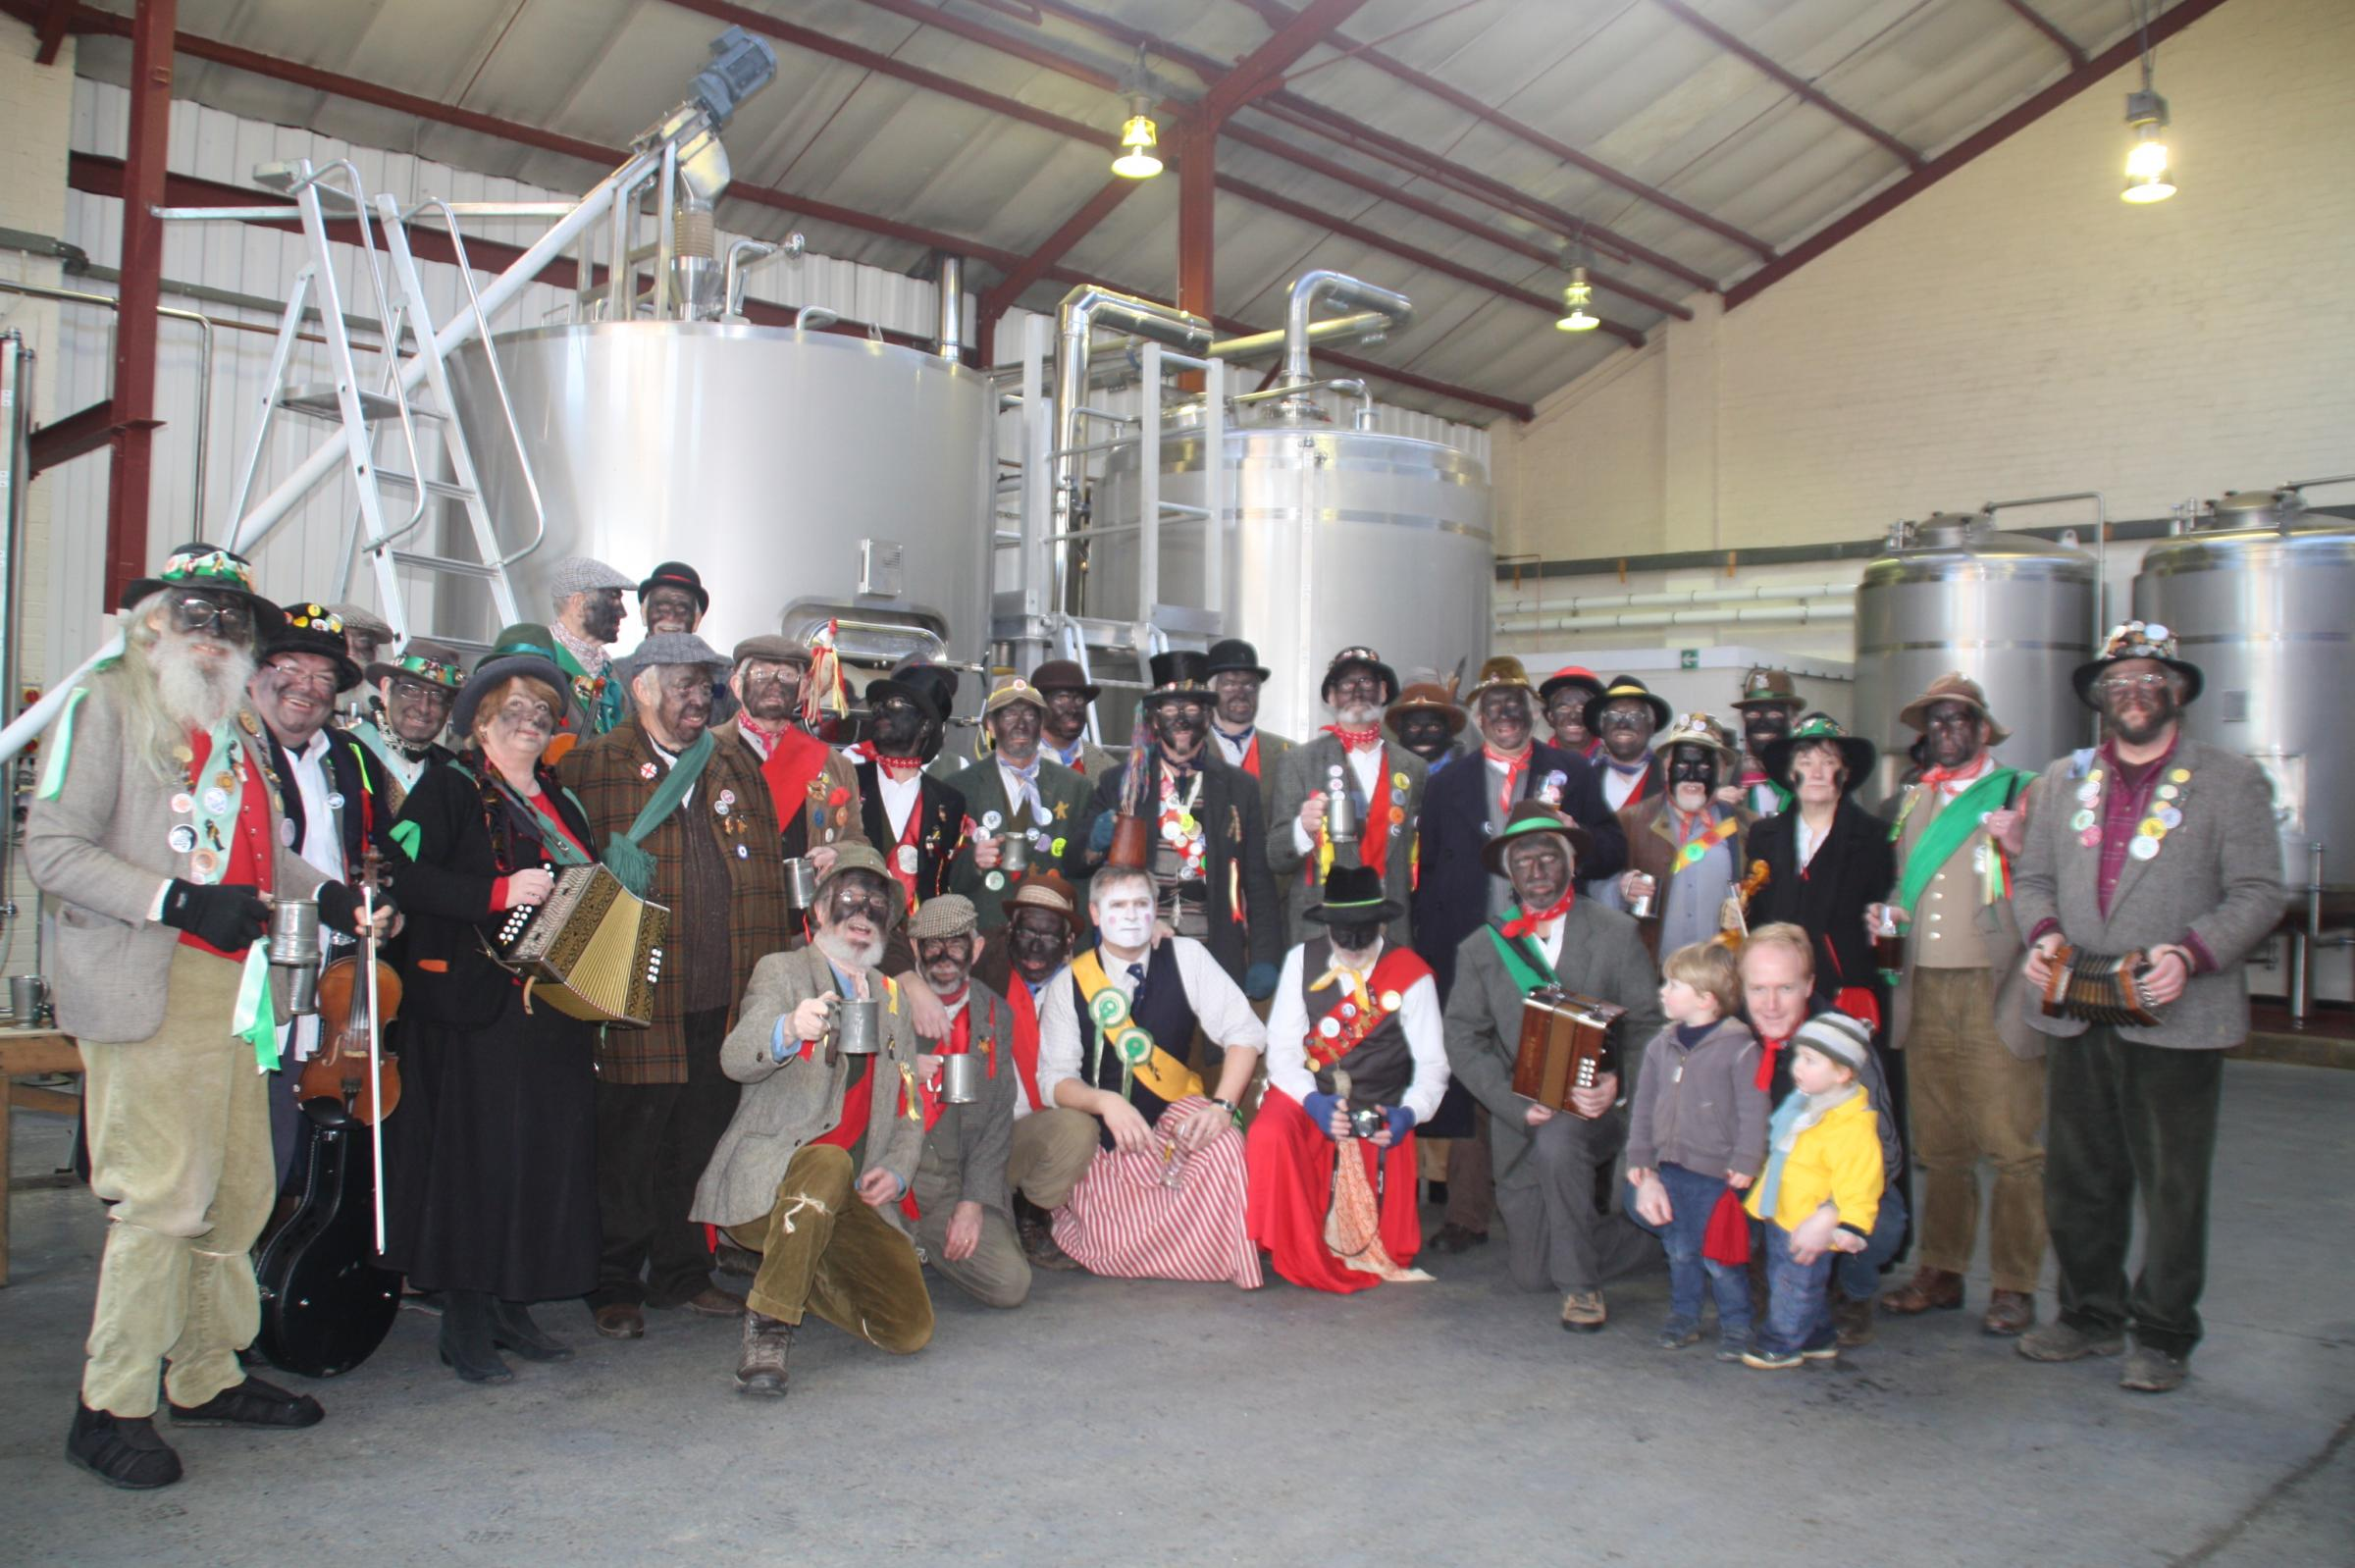 Traditional dancing and singing marks Plough Monday at brewery